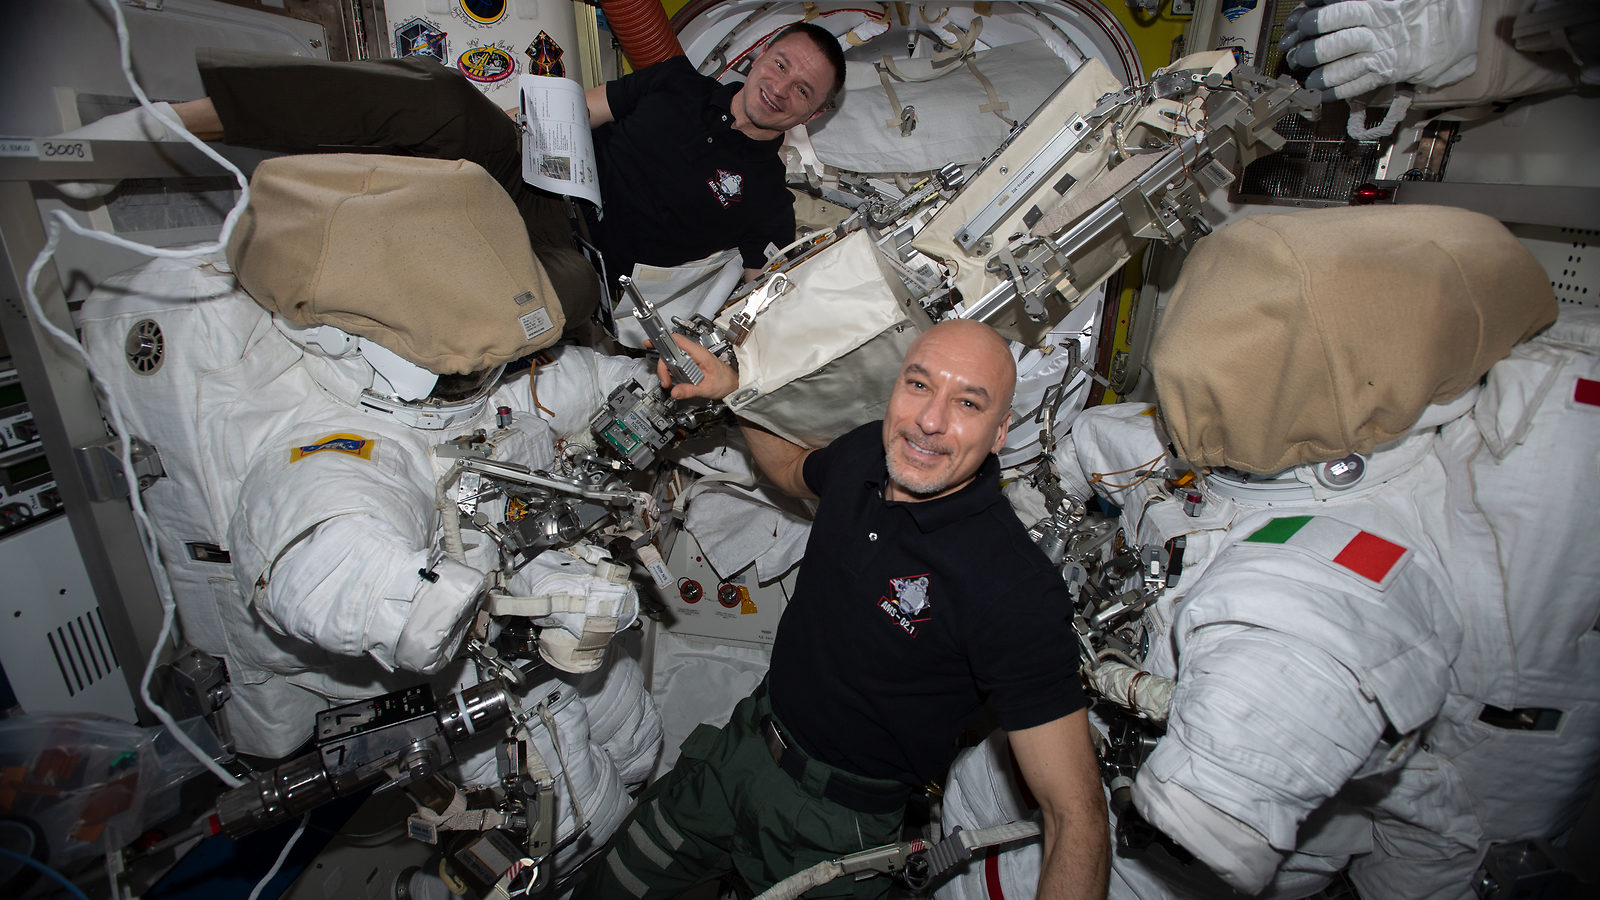 ISS astronauts start AMS repair